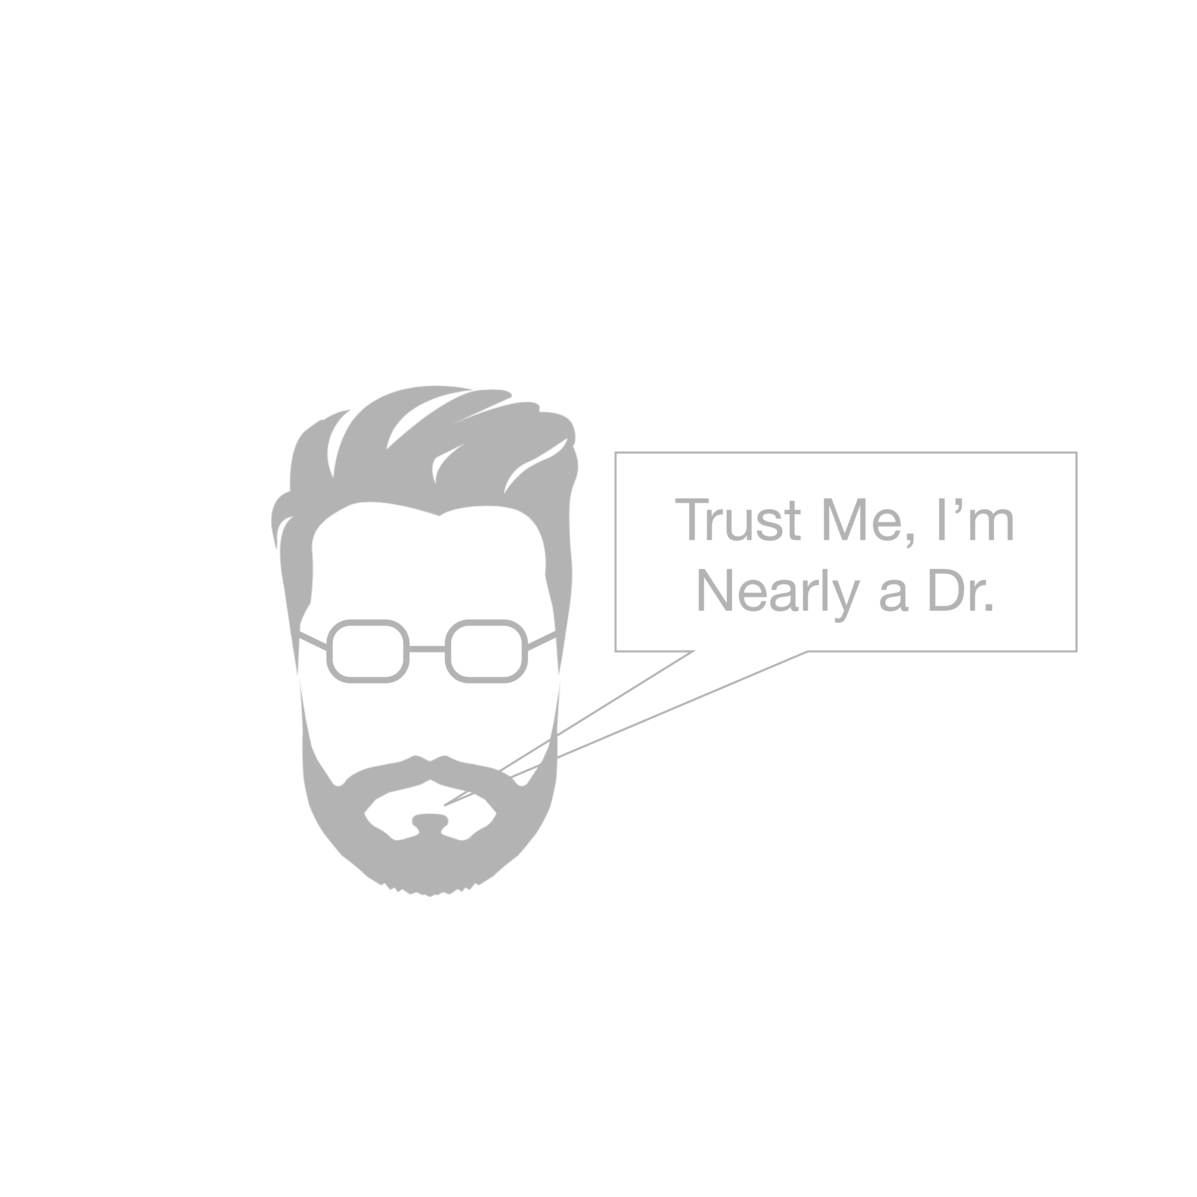 Trust Me, I'm Nearly a Dr.